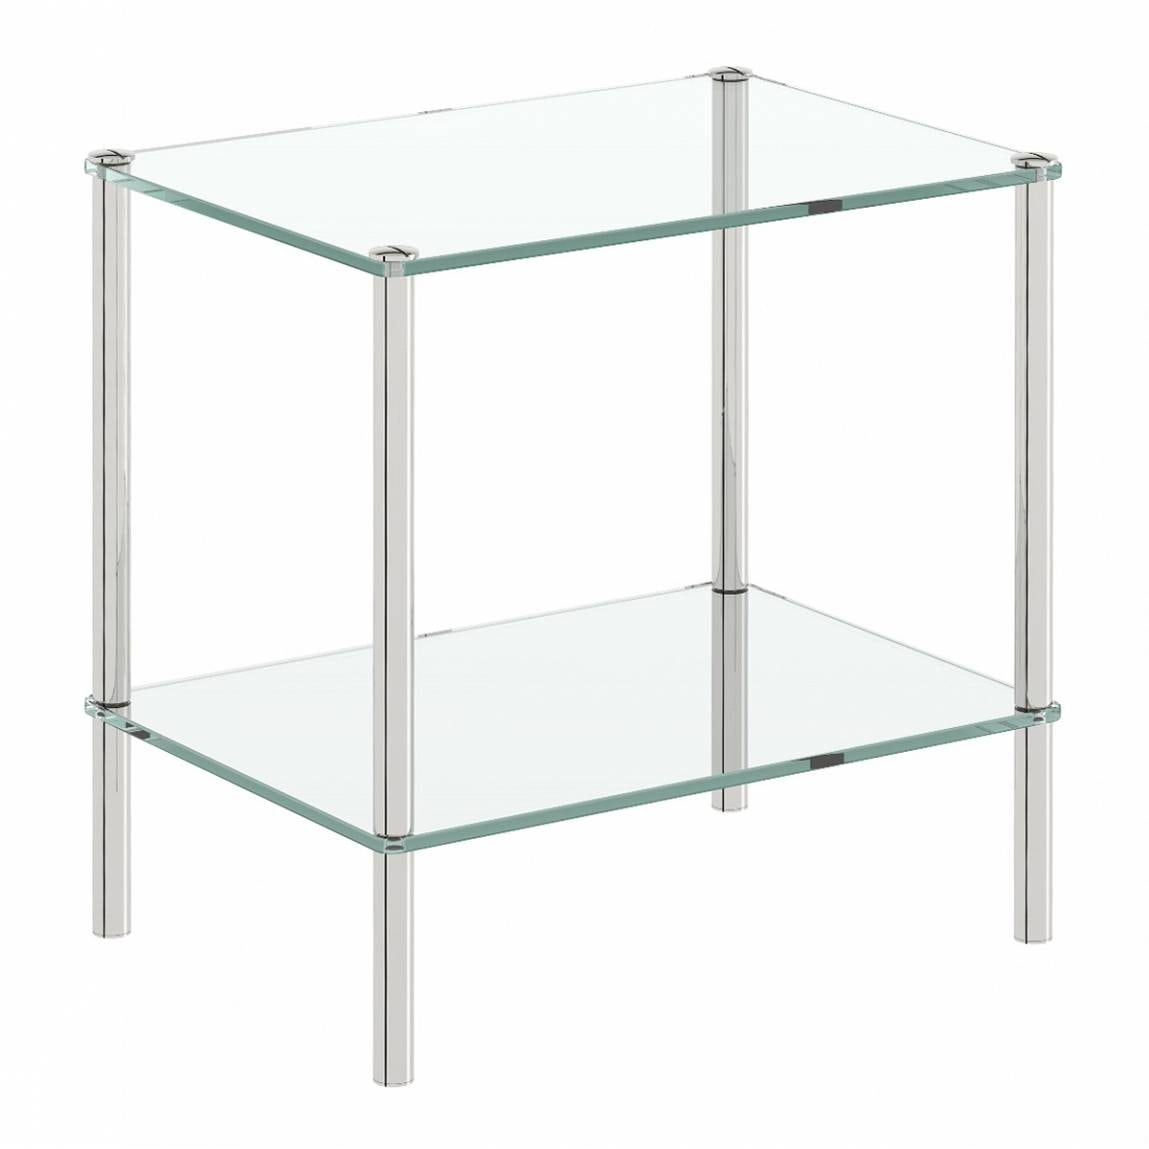 Orchard Options freestanding square 2 glass shelf unit